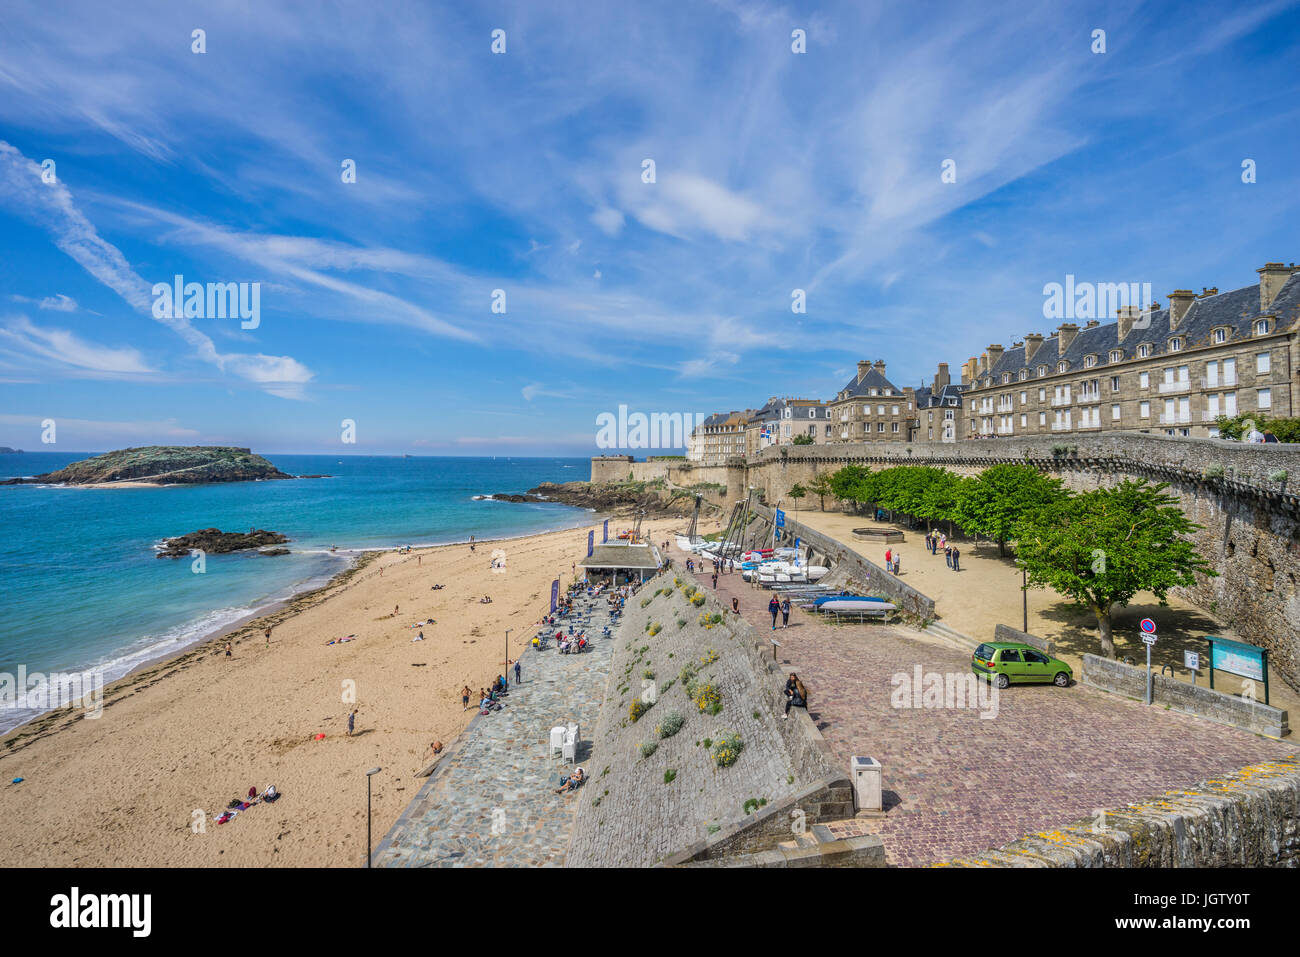 France, Brittany, Saint-Malo, view of Plage de Bon Secours beach and the city wall - Stock Image